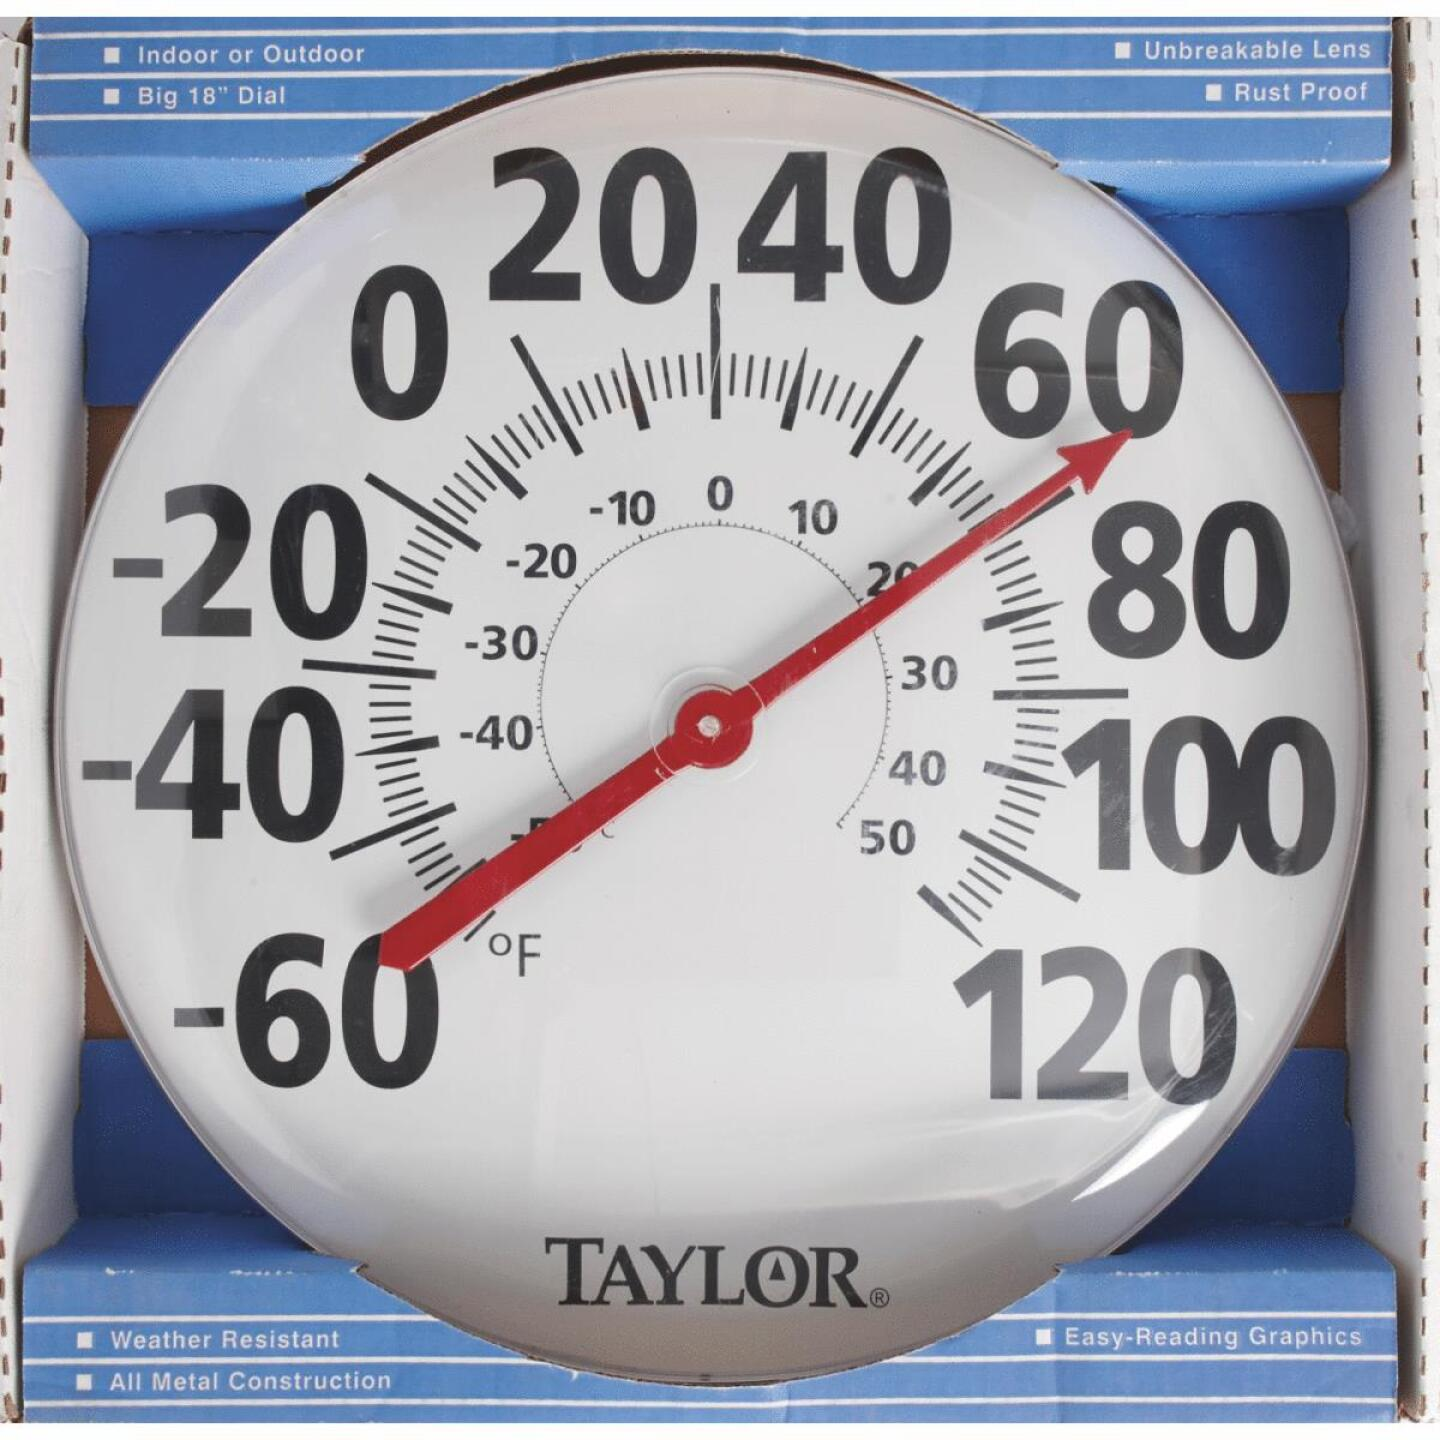 "Taylor 18"" Fahrenheit and Celsius -60 To 120 F, -50 To 50 C Outdoor Wall Thermometer Image 2"